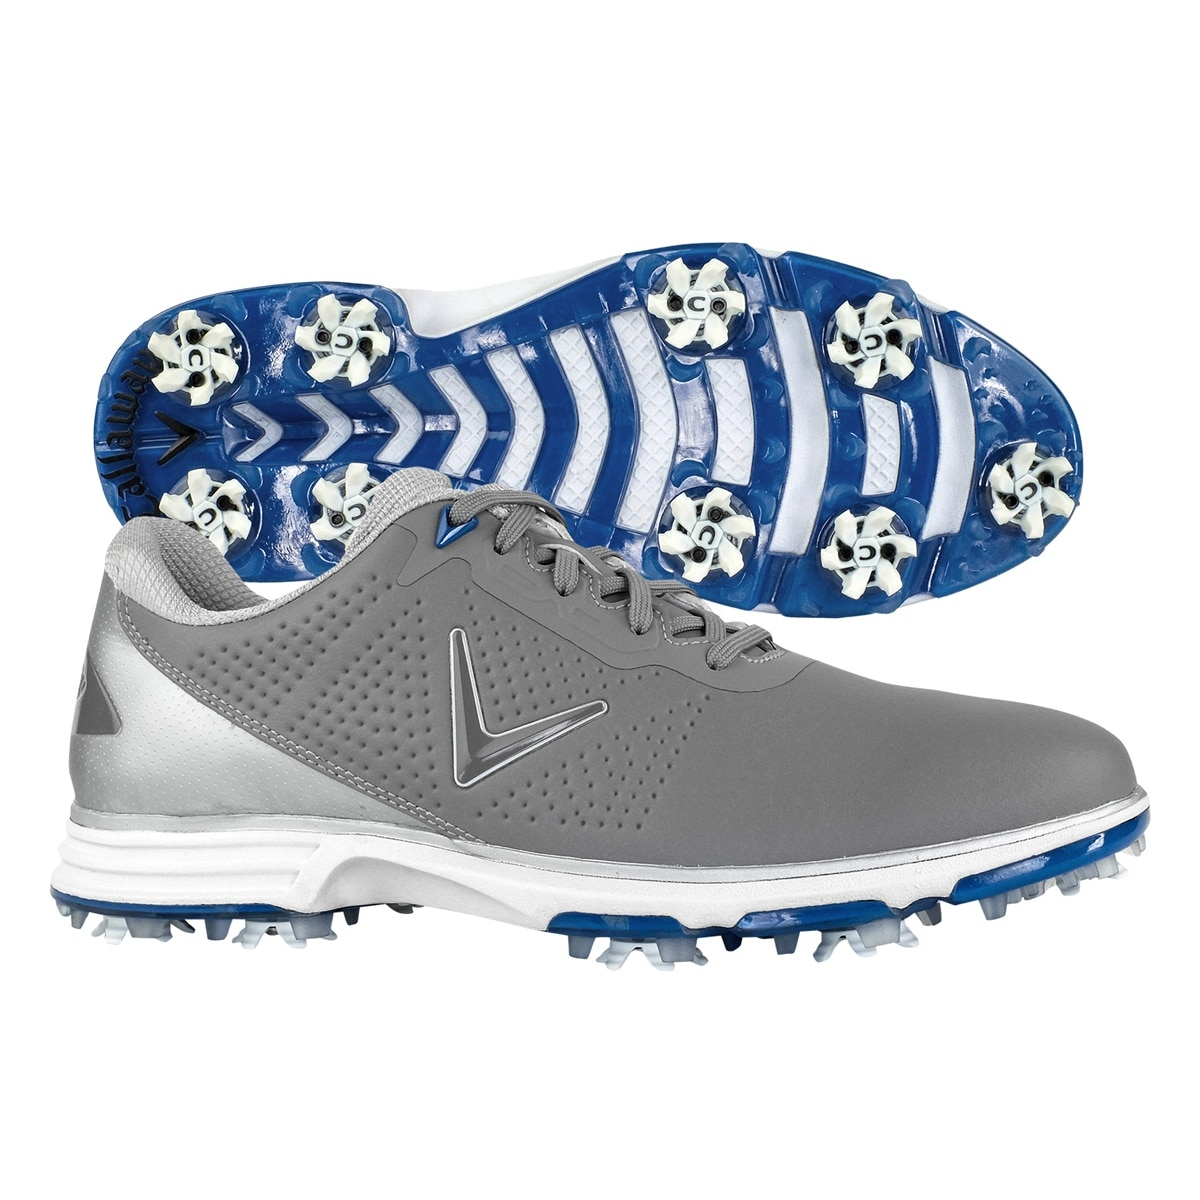 ea4c74a7e99e Shop Callaway Men s Coronado Golf Shoes - Grey Blue - On Sale - Free  Shipping Today - Overstock - 25583551